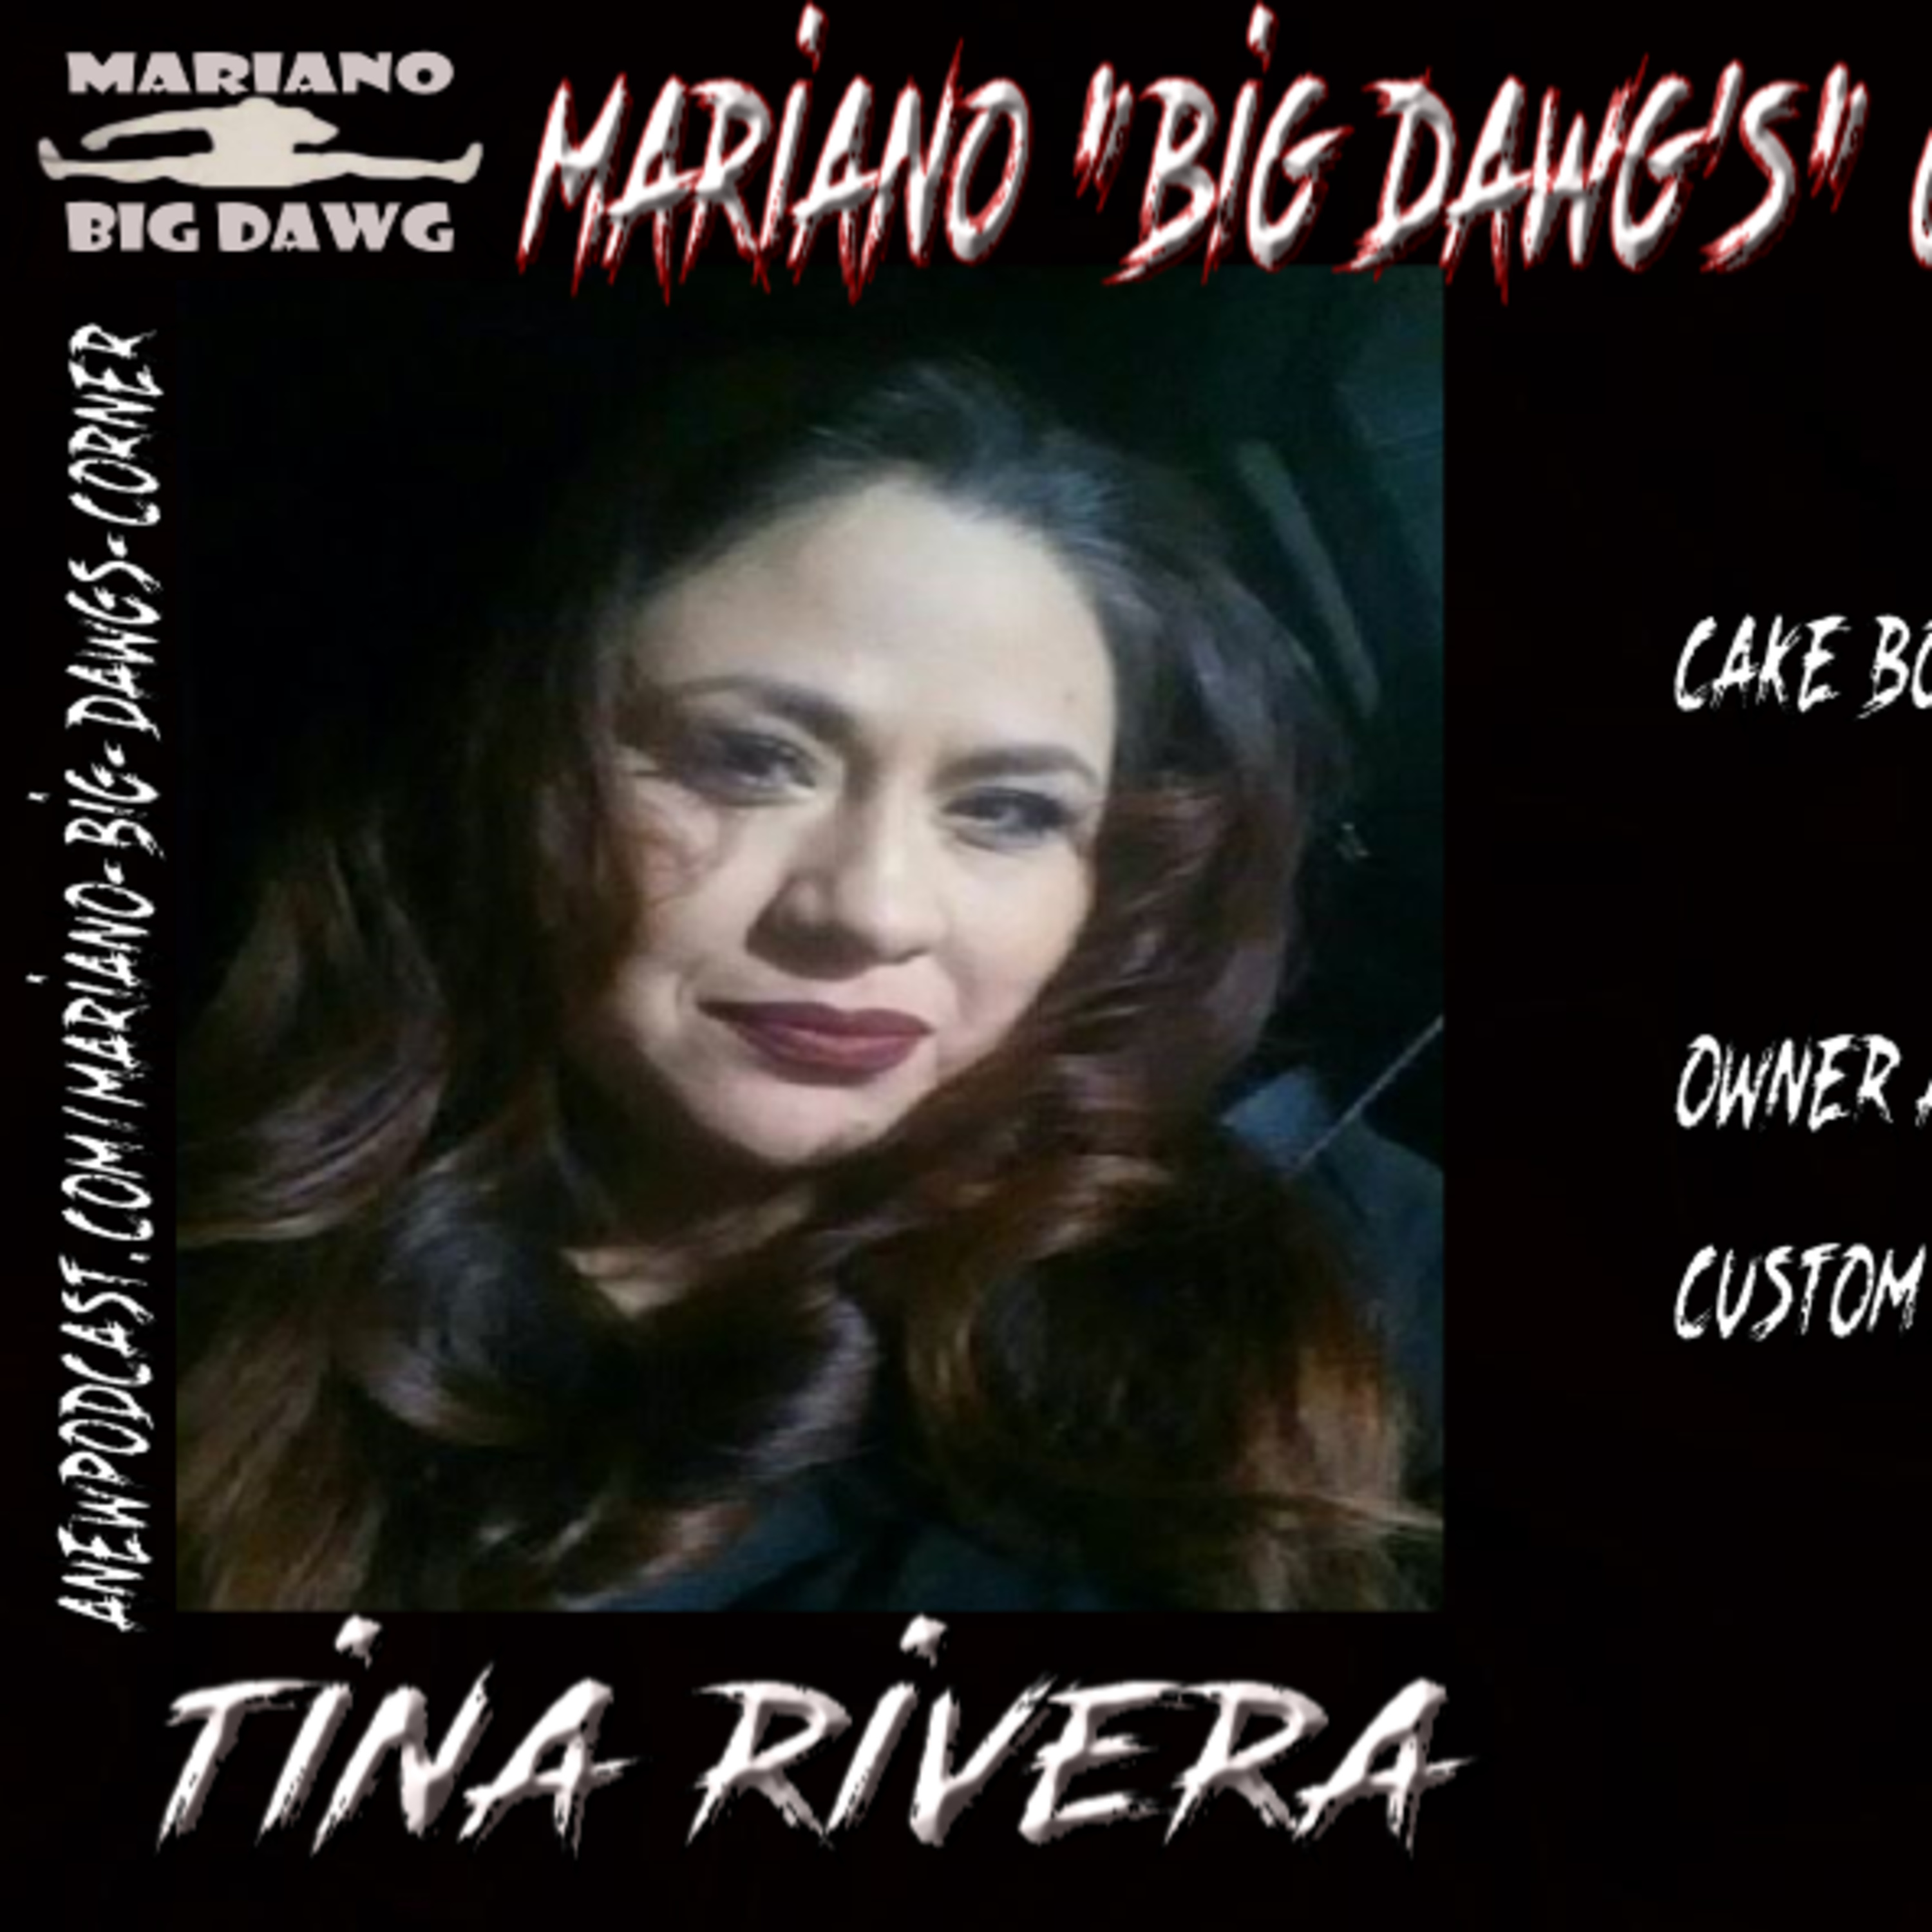 Exclusive Interview with Tina Rivera